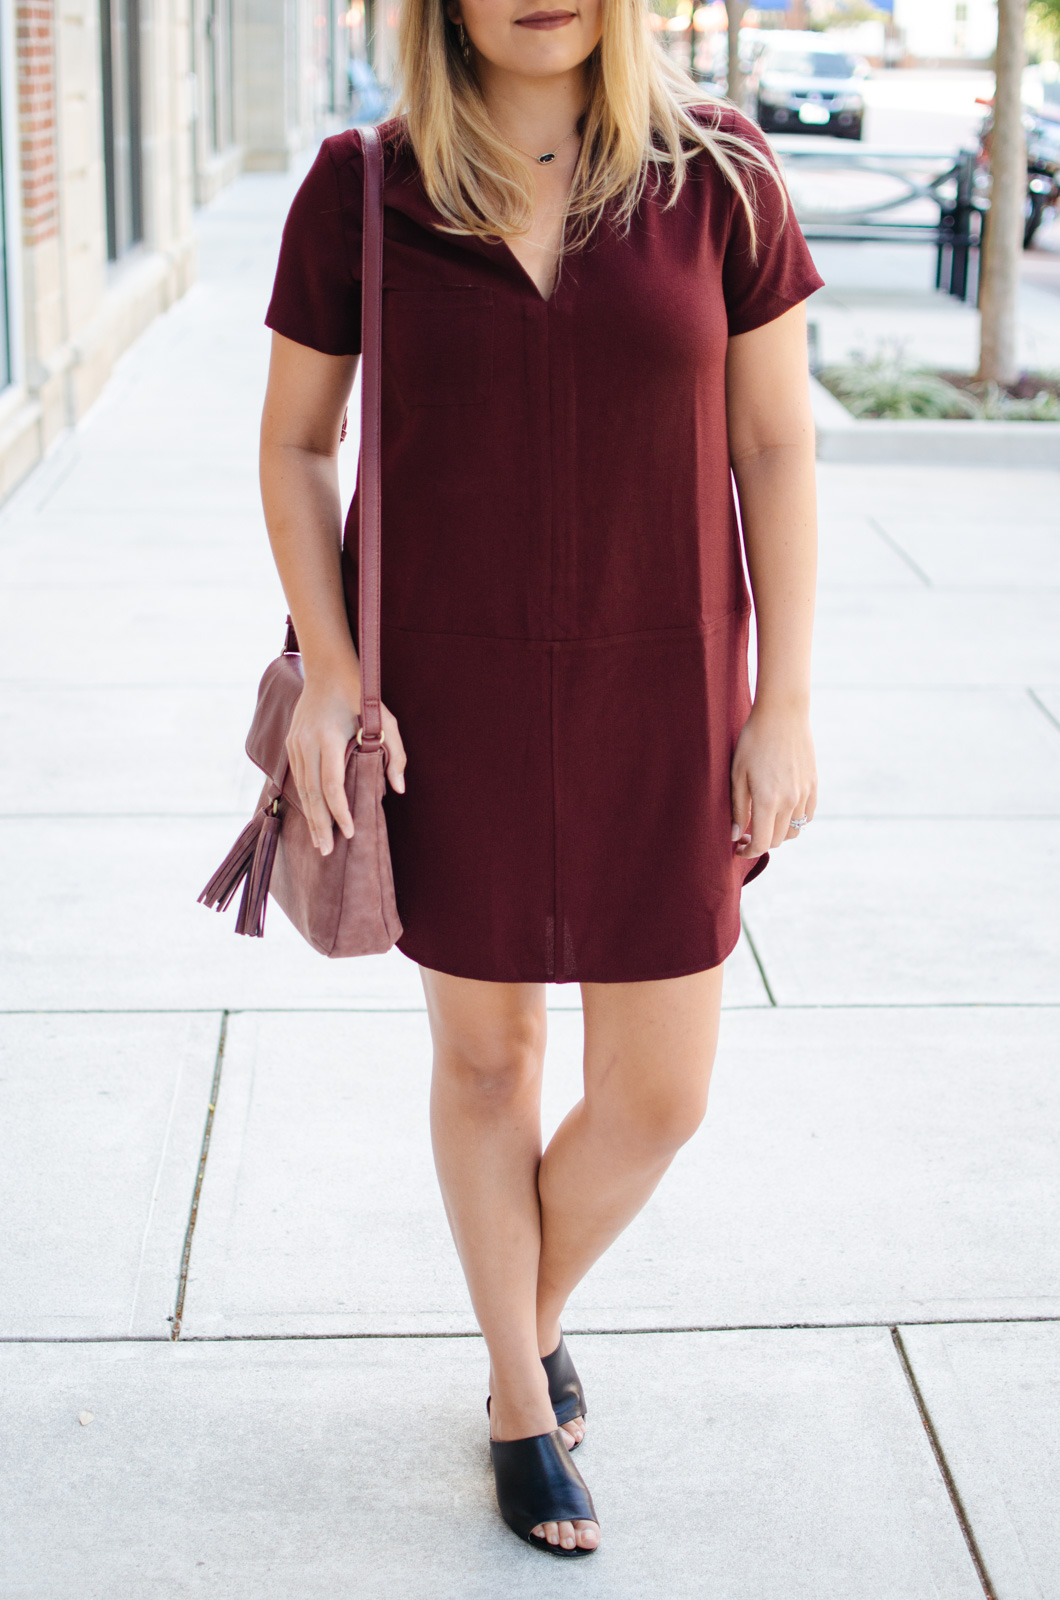 best fall outfit ideas - must-have fall dress | For more cute Fall transition outfits, click through to bylaurenm.com!